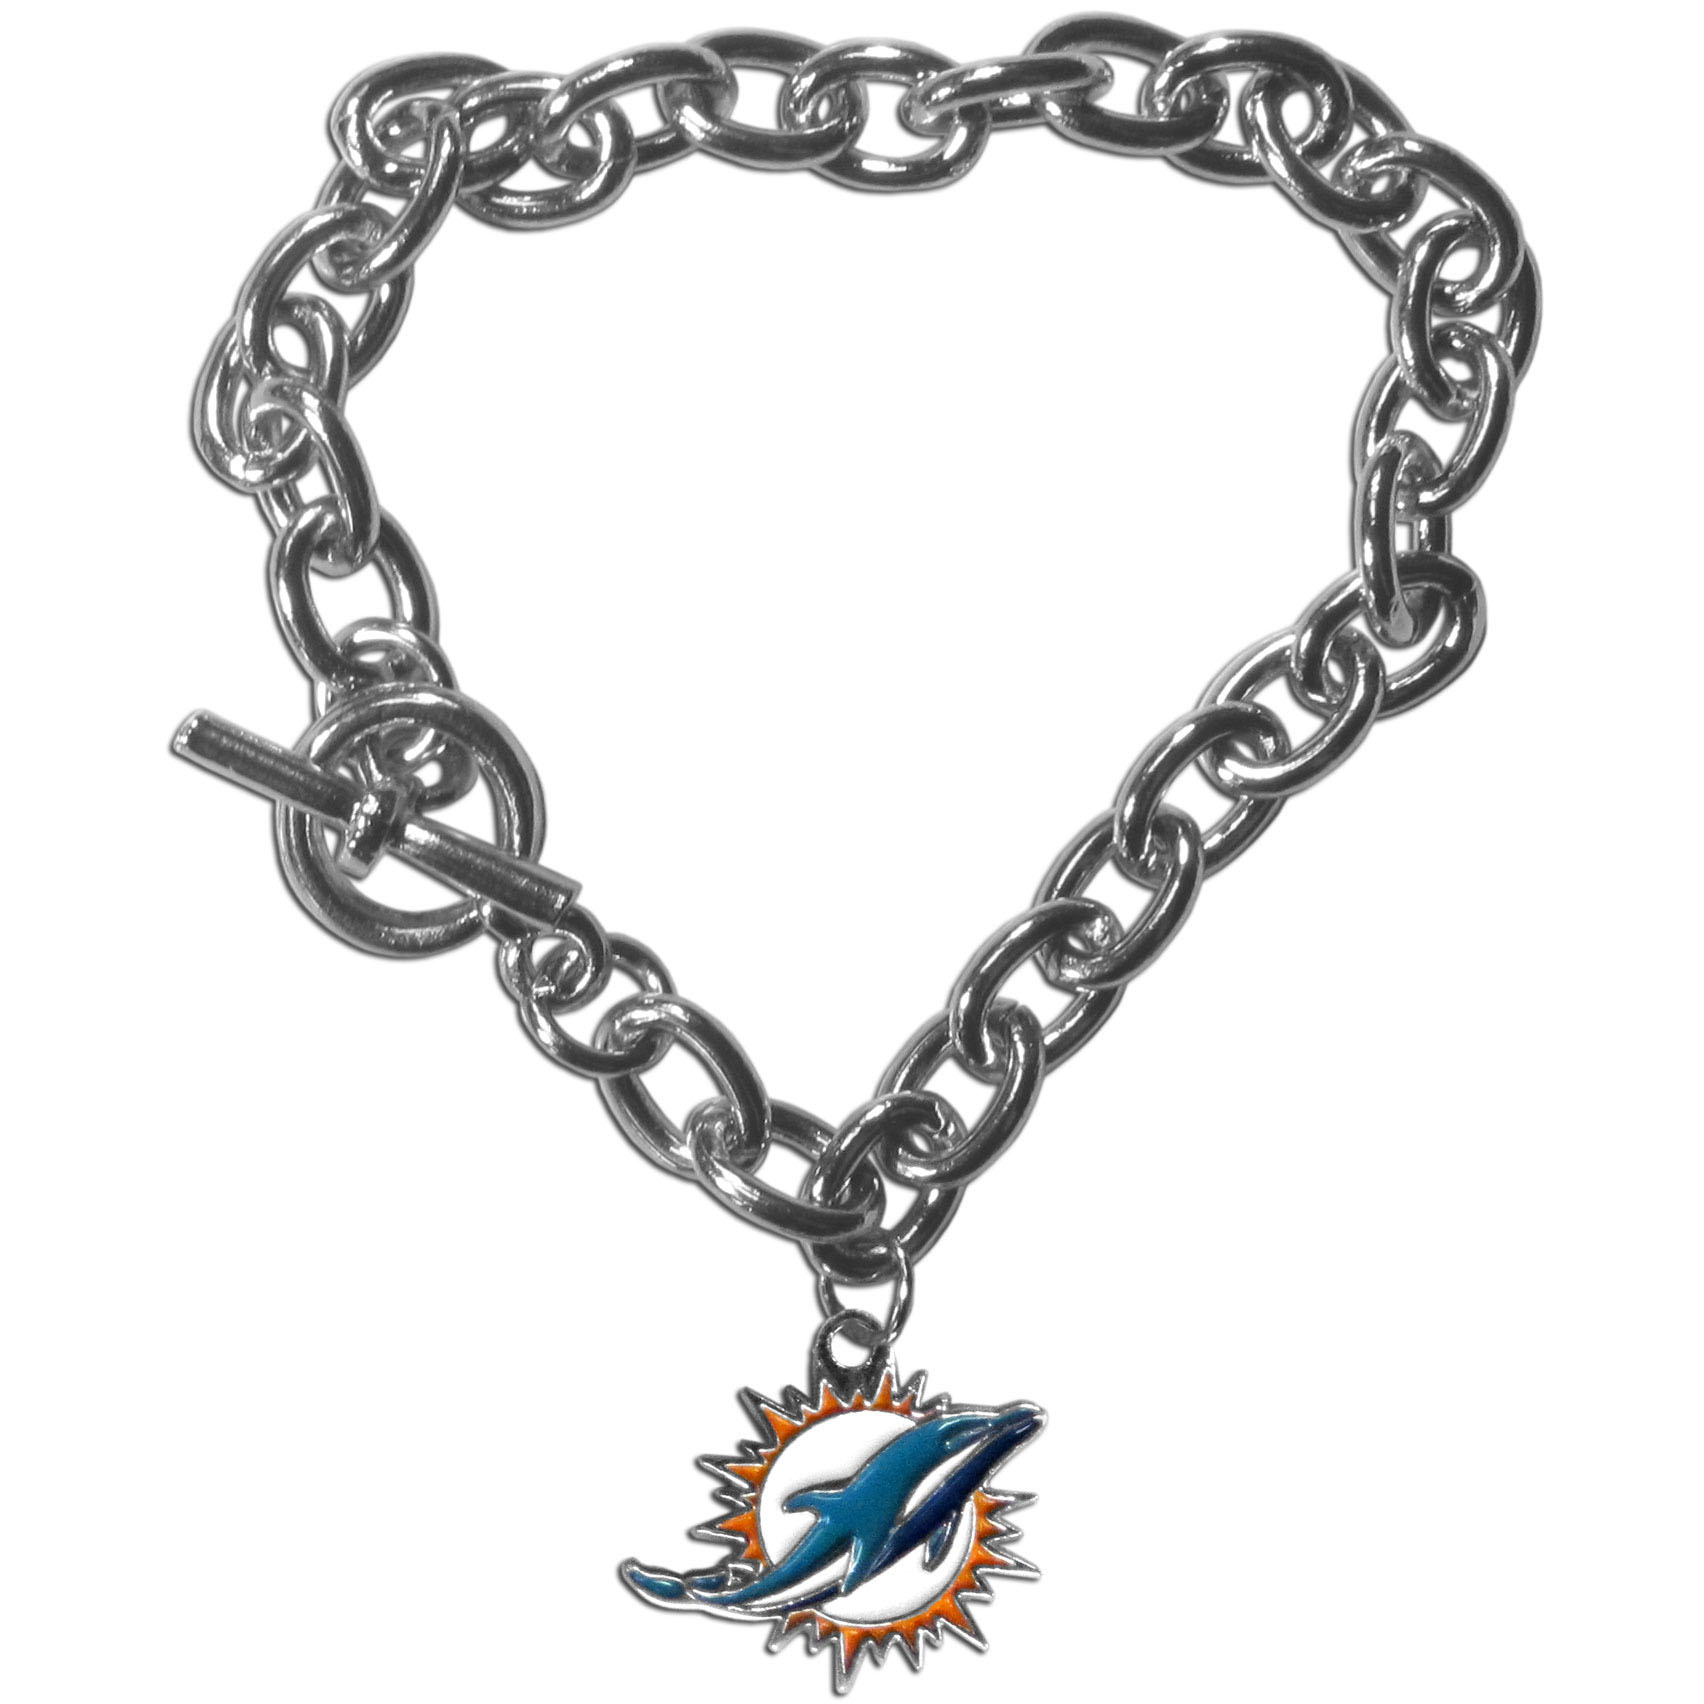 Miami Dolphins Charm Chain Bracelet - Our classic single charm bracelet is a great way to show off your team pride! The 7.5 inch large link chain features a high polish Miami Dolphins charm and features a toggle clasp which makes it super easy to take on and off.